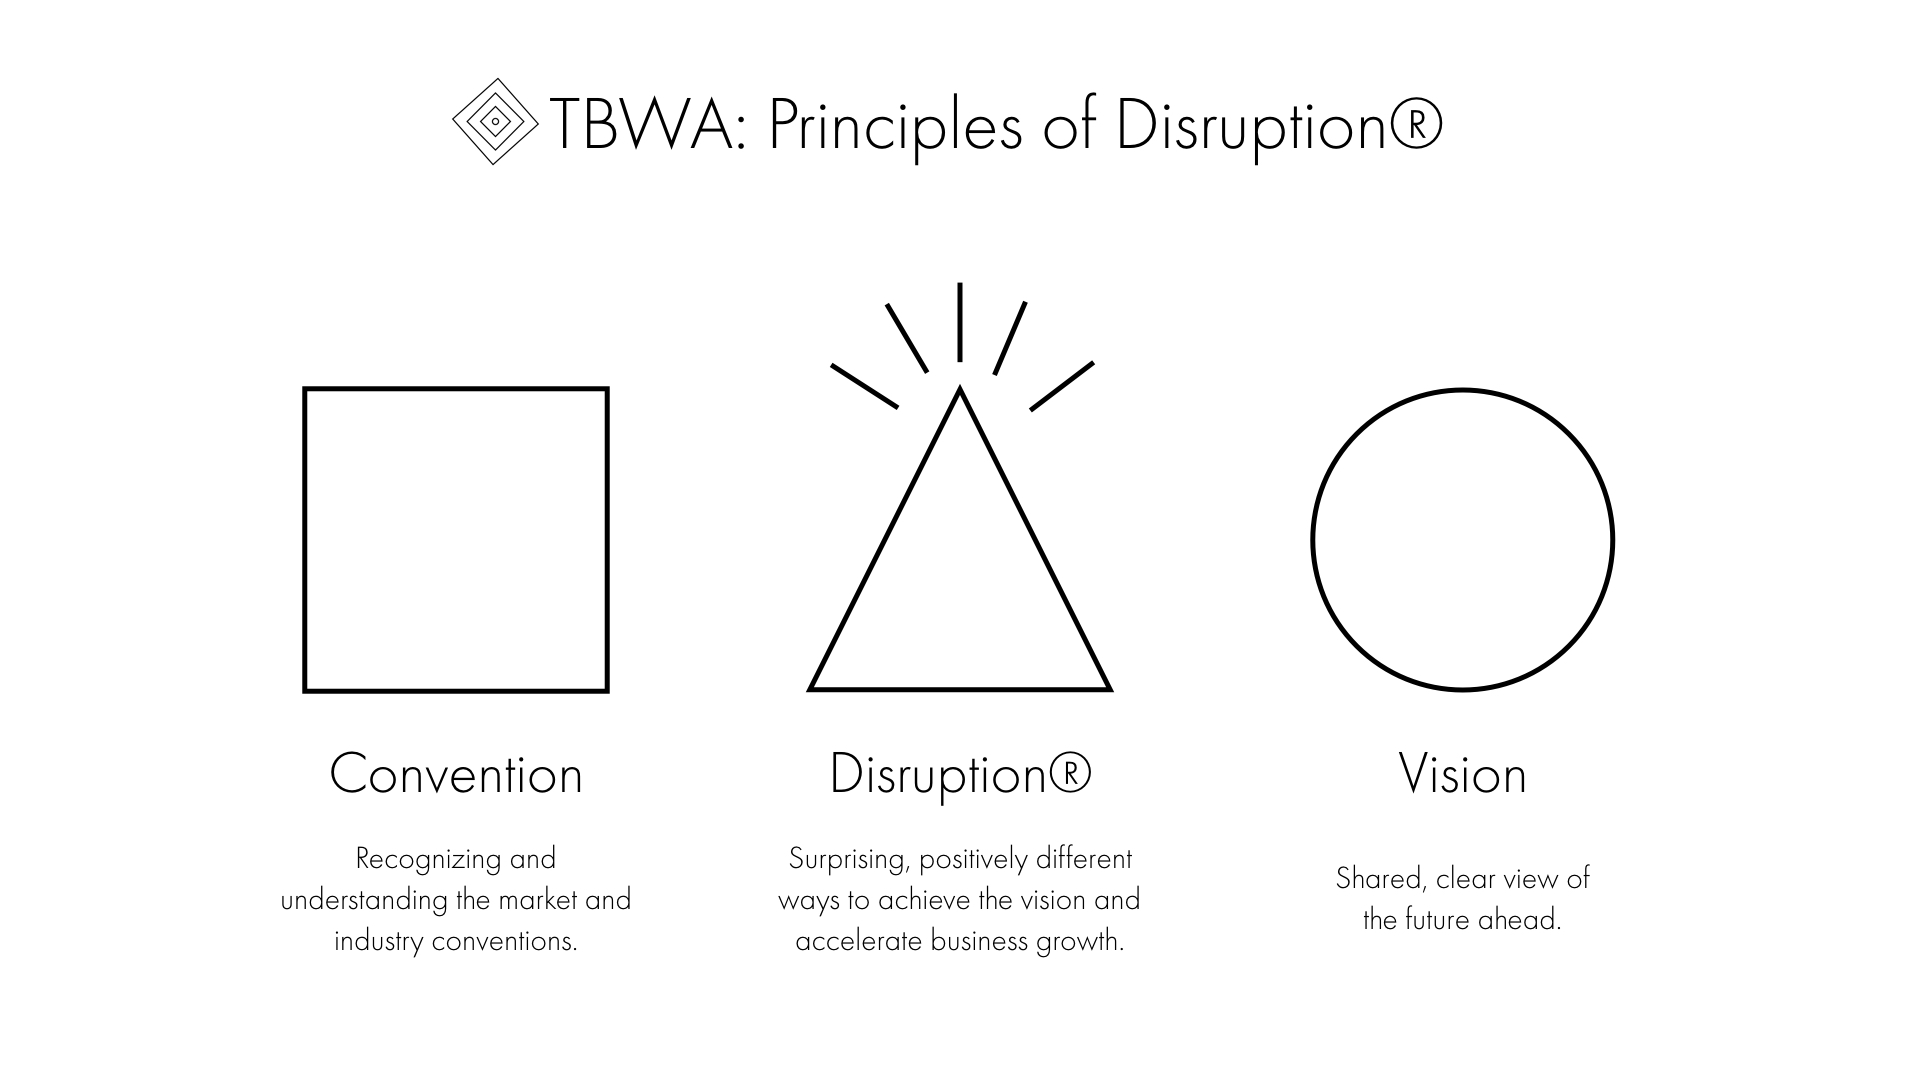 TBWA Principles of Disruption